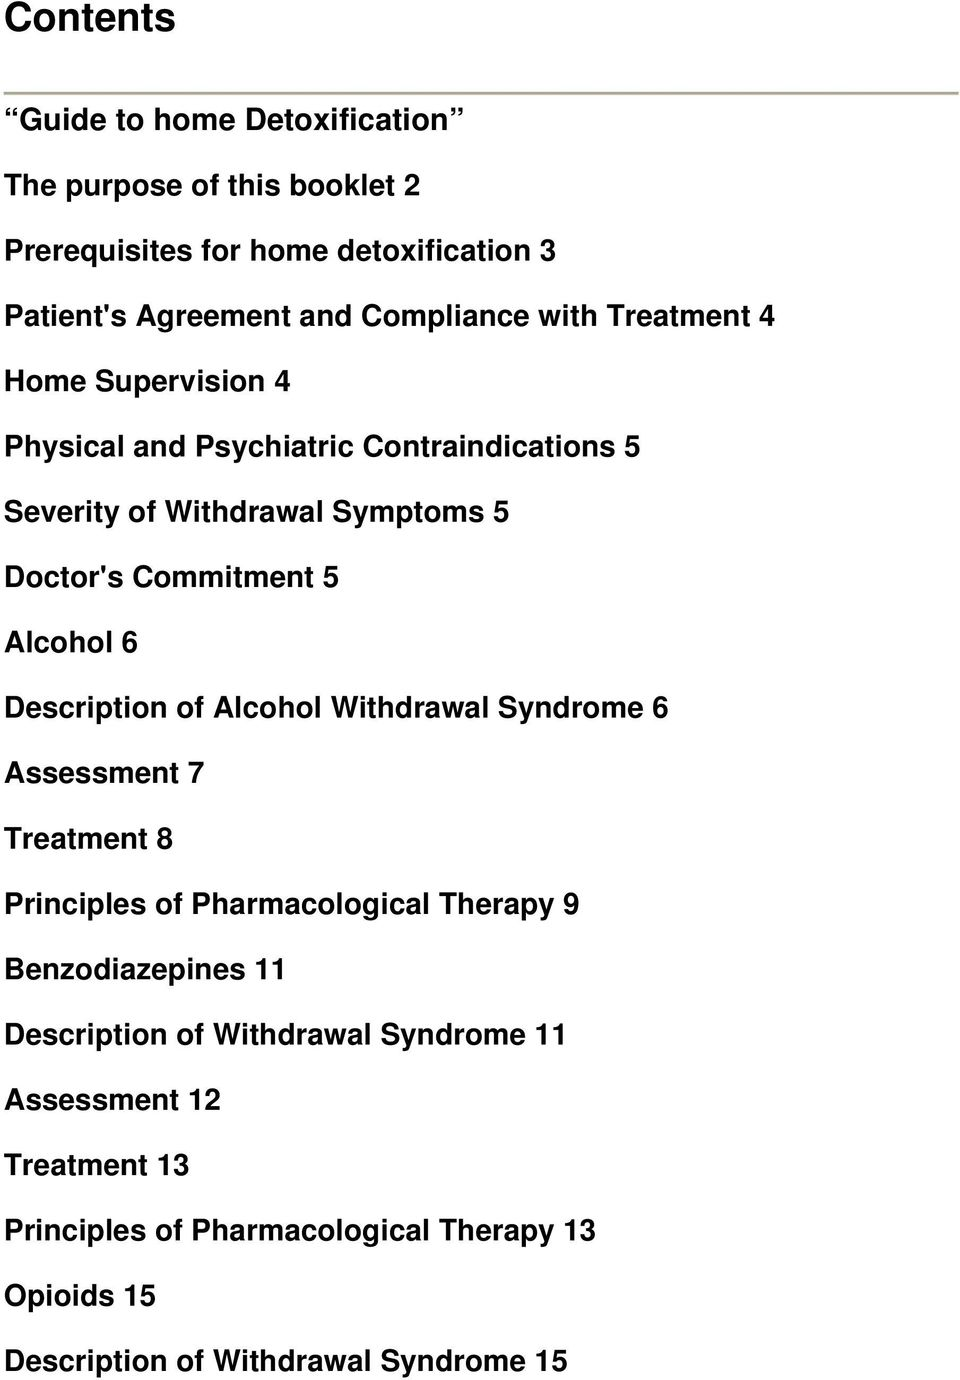 Alcohol 6 Description of Alcohol Withdrawal Syndrome 6 Assessment 7 Treatment 8 Principles of Pharmacological Therapy 9 Benzodiazepines 11